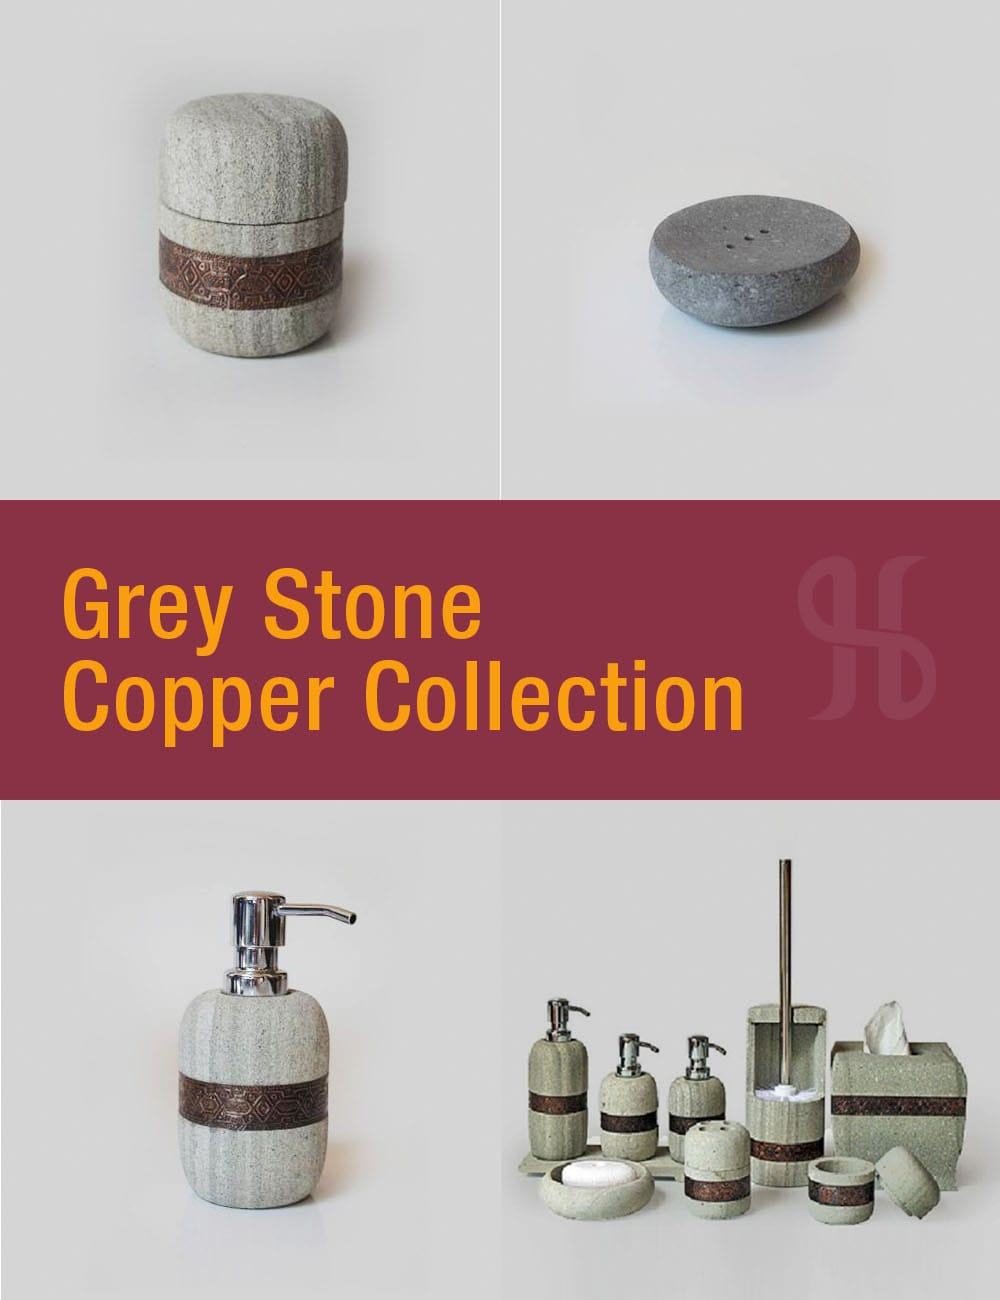 Grey Stone Copper Collection